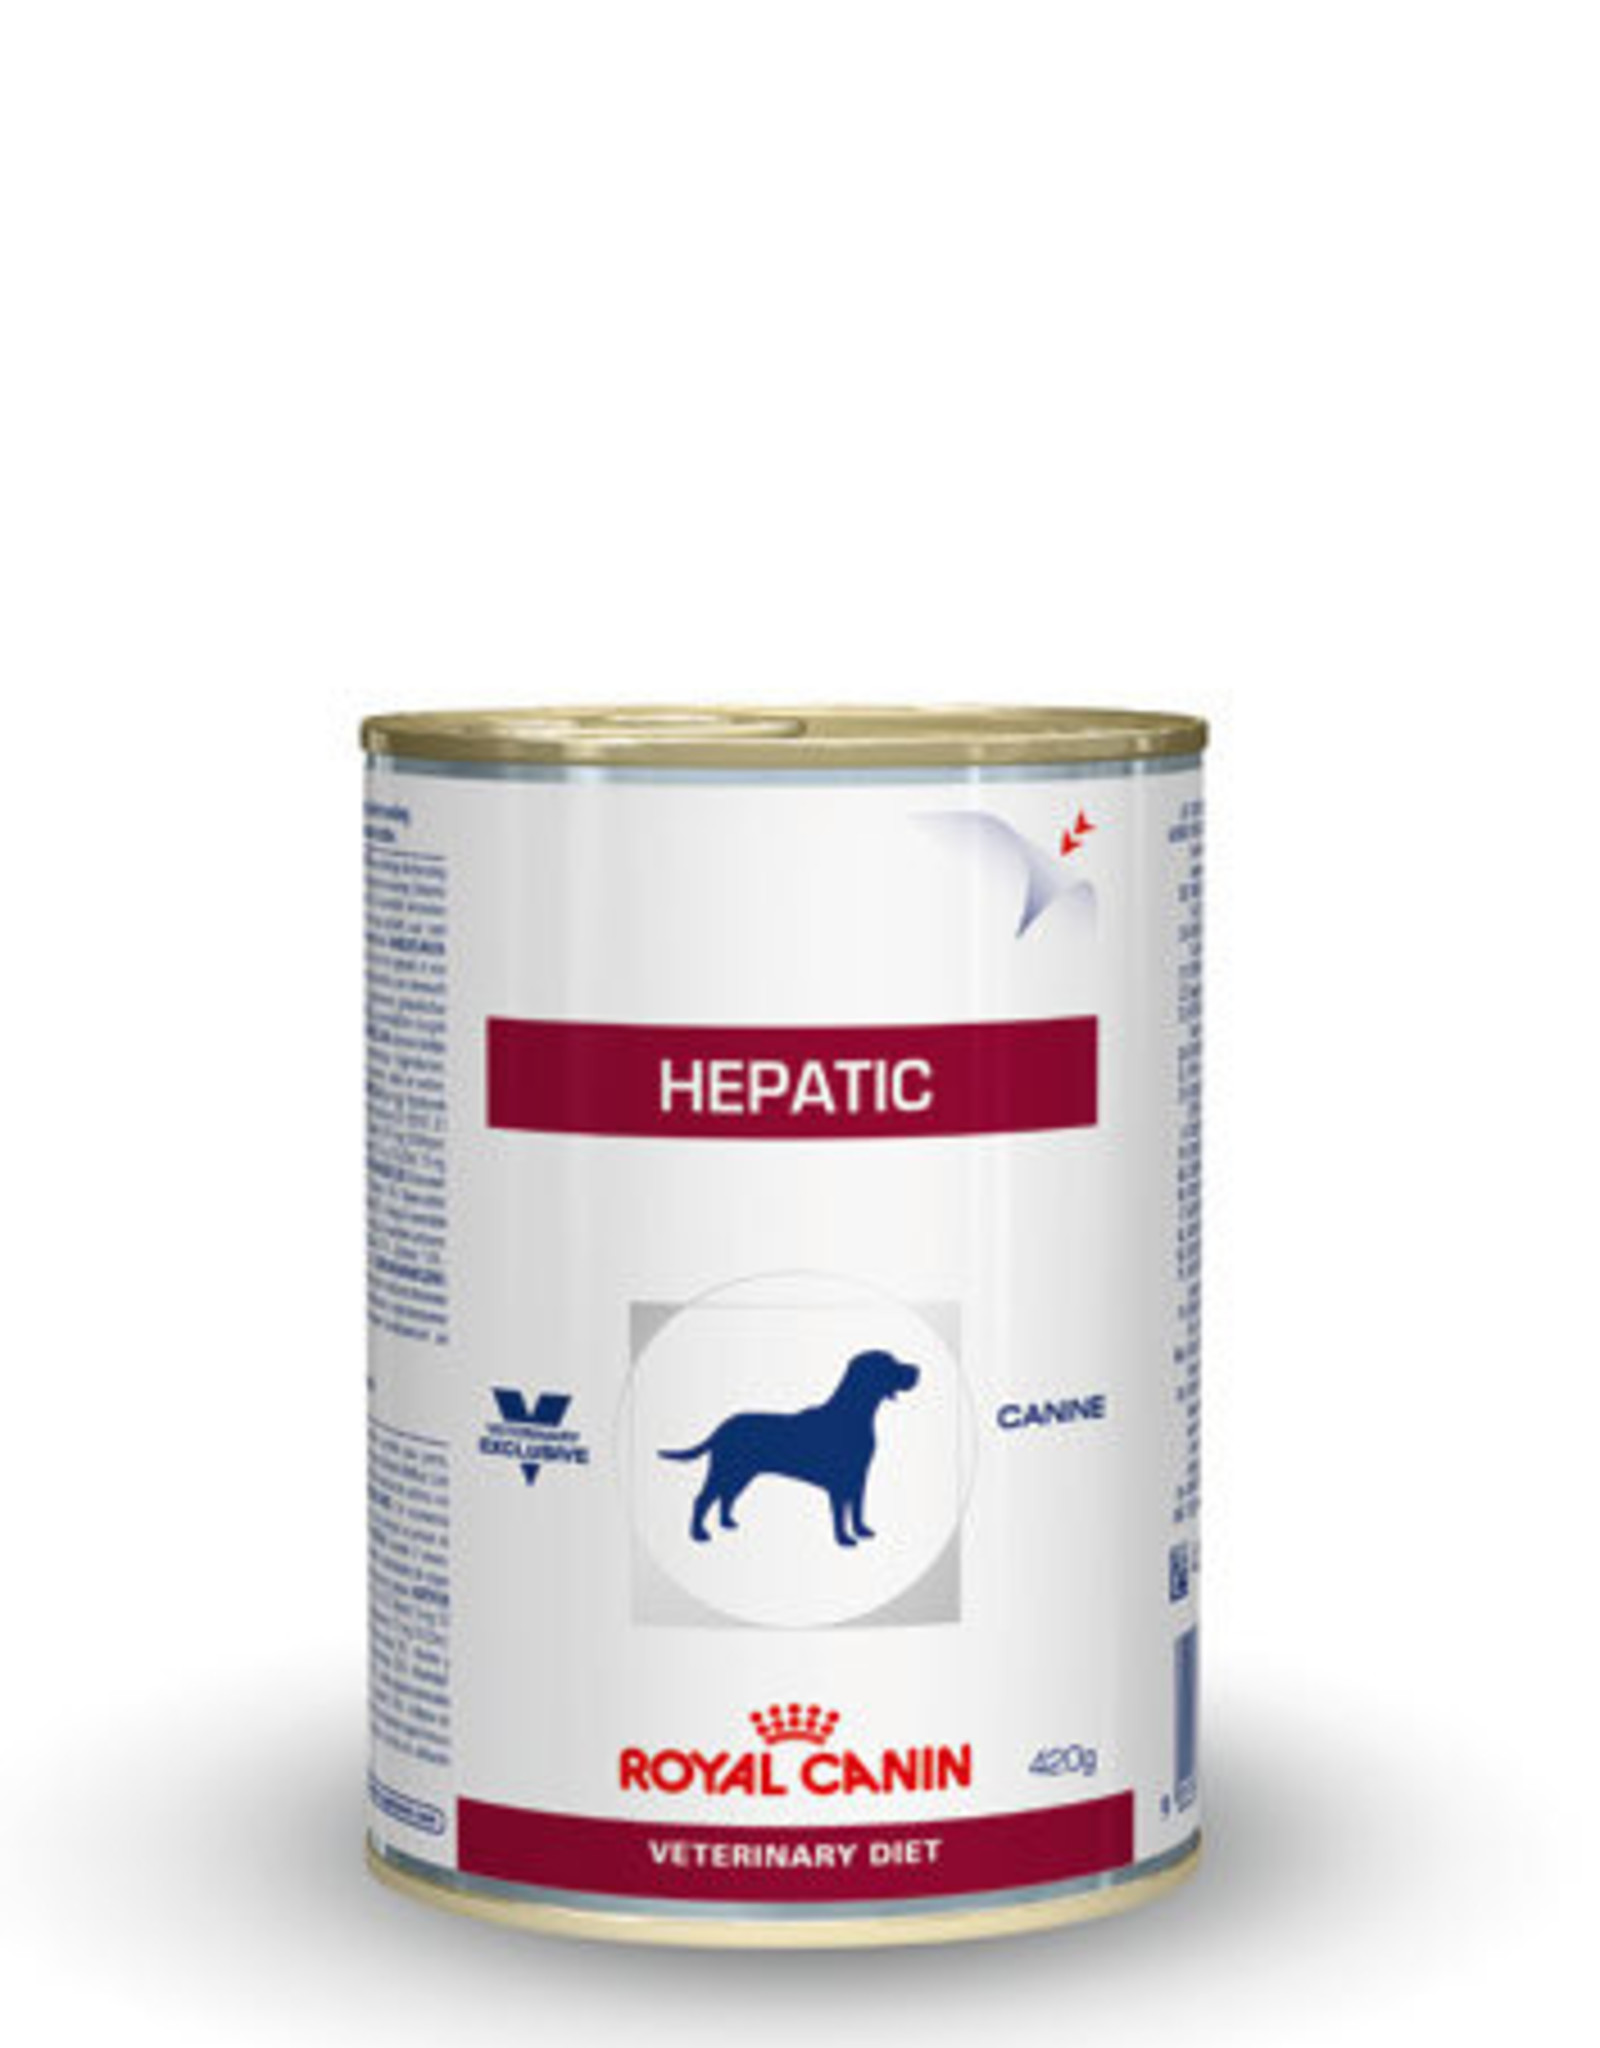 Royal Canin Royal Canin Vdiet Hepatic Canine 12x420gr